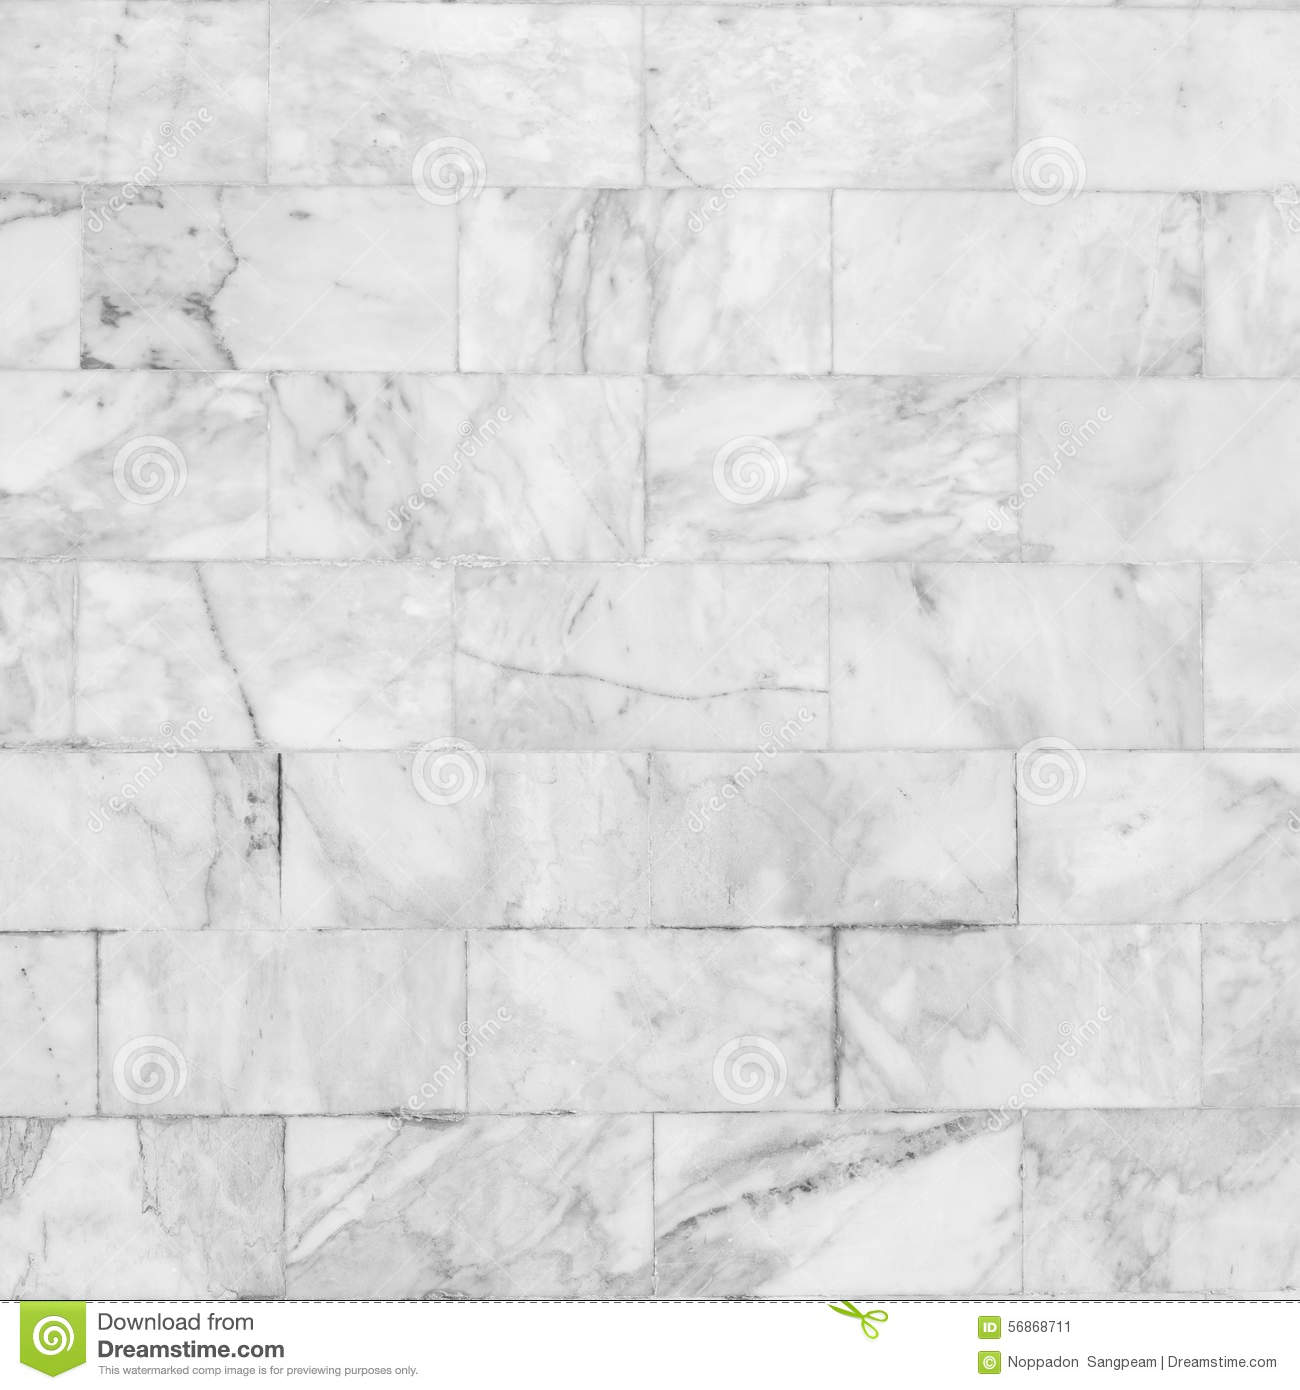 Marble Tile Floor Texture White Marble Tileemerson Project Webisode Reveal Marble Tile